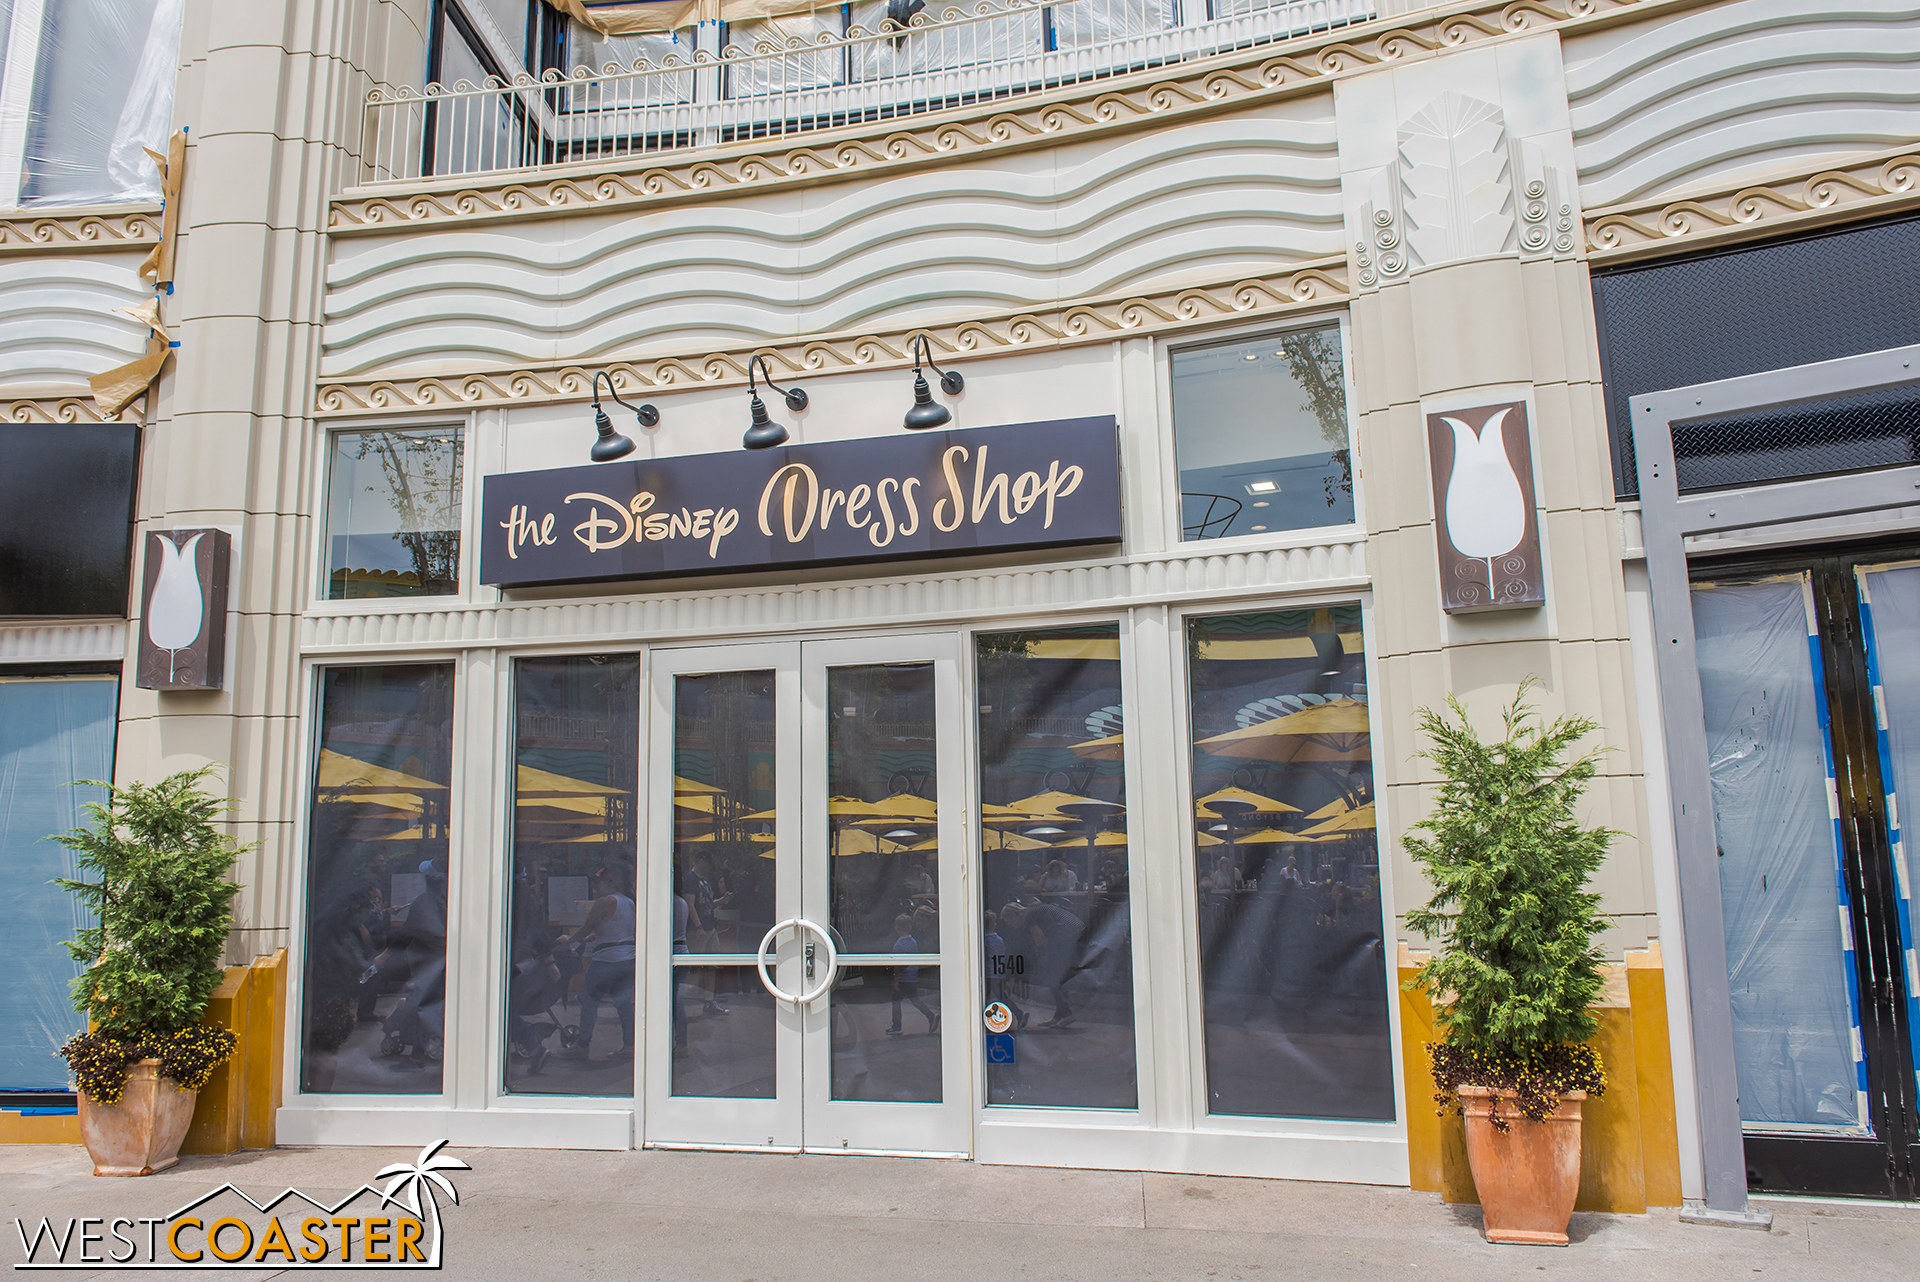 On Friday, the Disney Dress Store was open. By Sunday, it was closed.